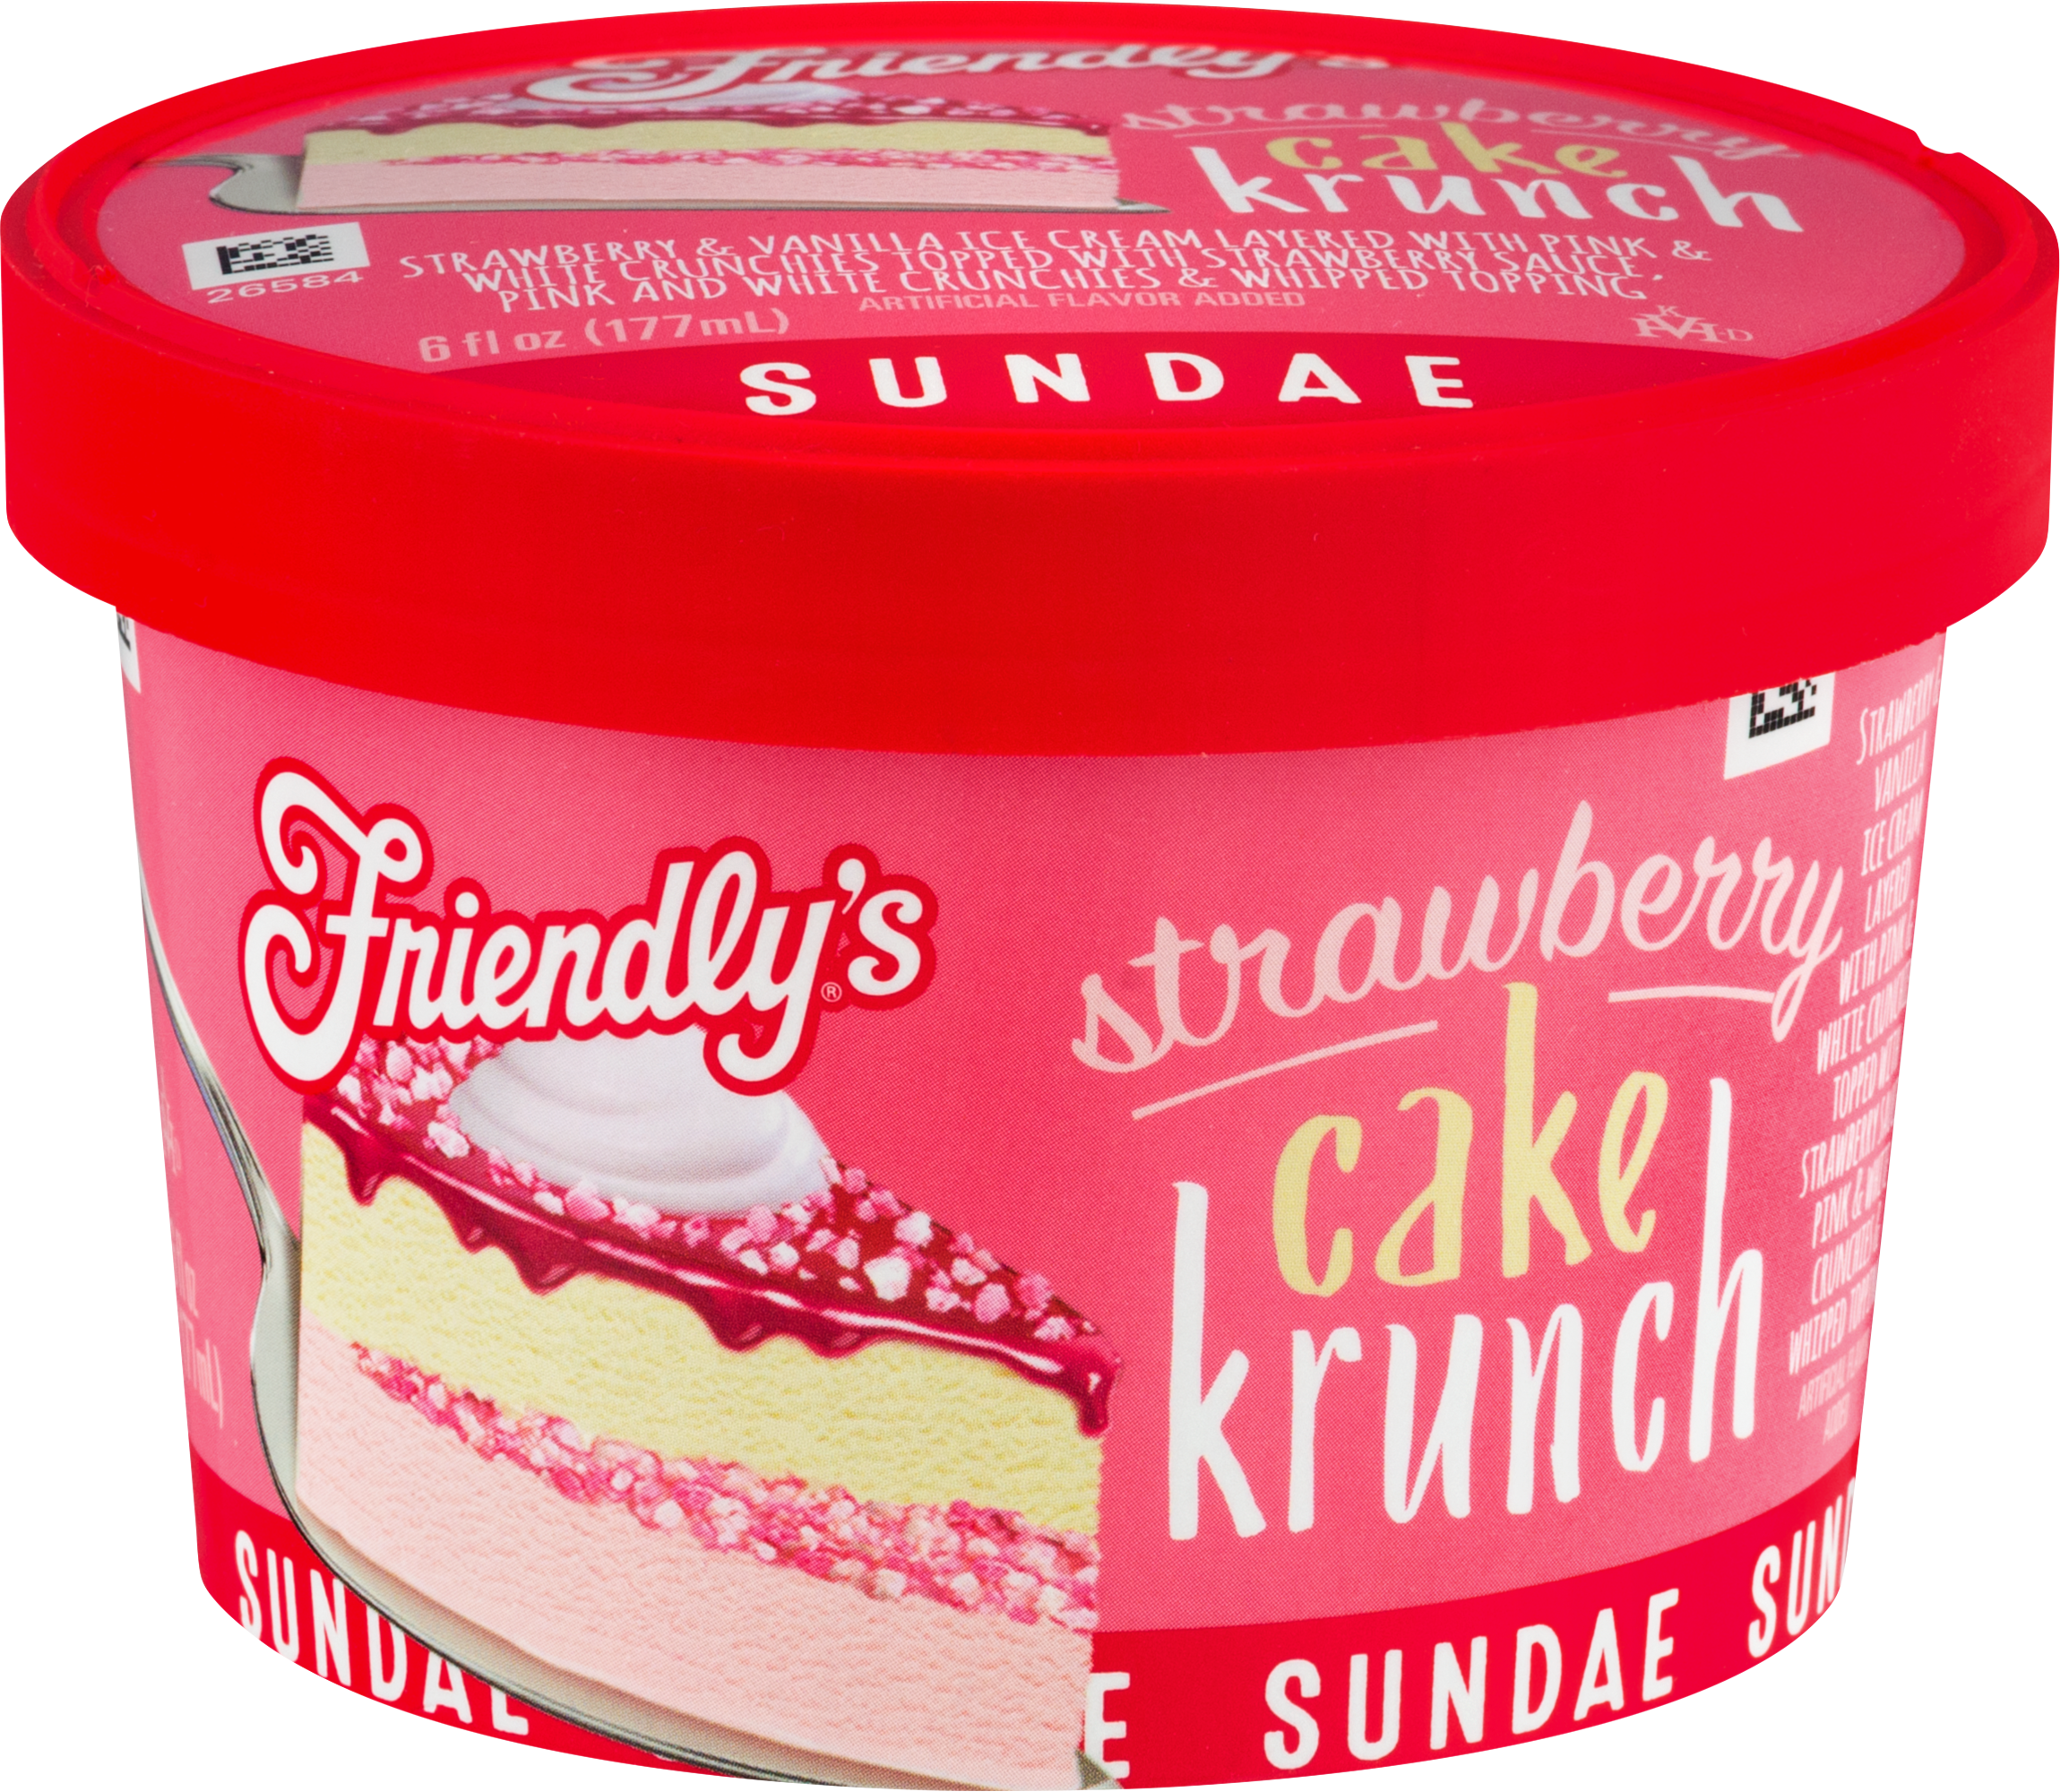 Strawberry Cake Krunch Sundae Cup